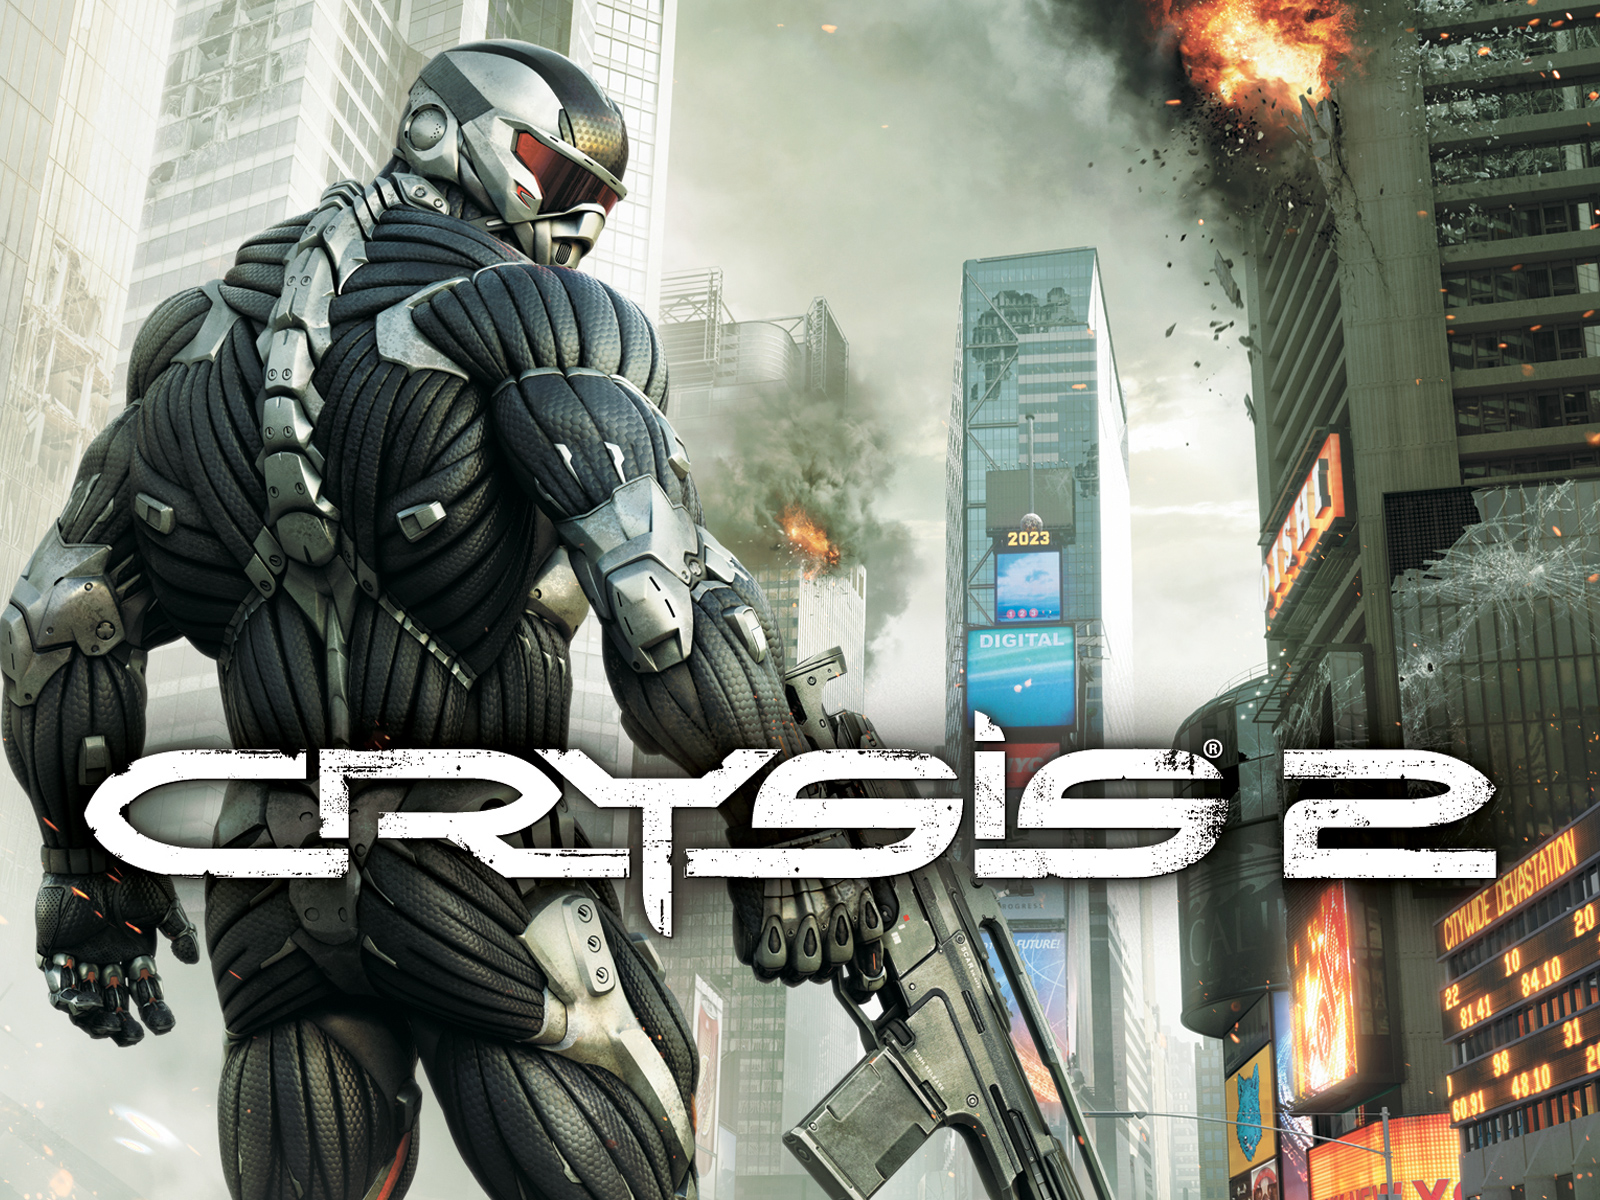 Congrats to the winner of a our game giveaway – Crysis 2